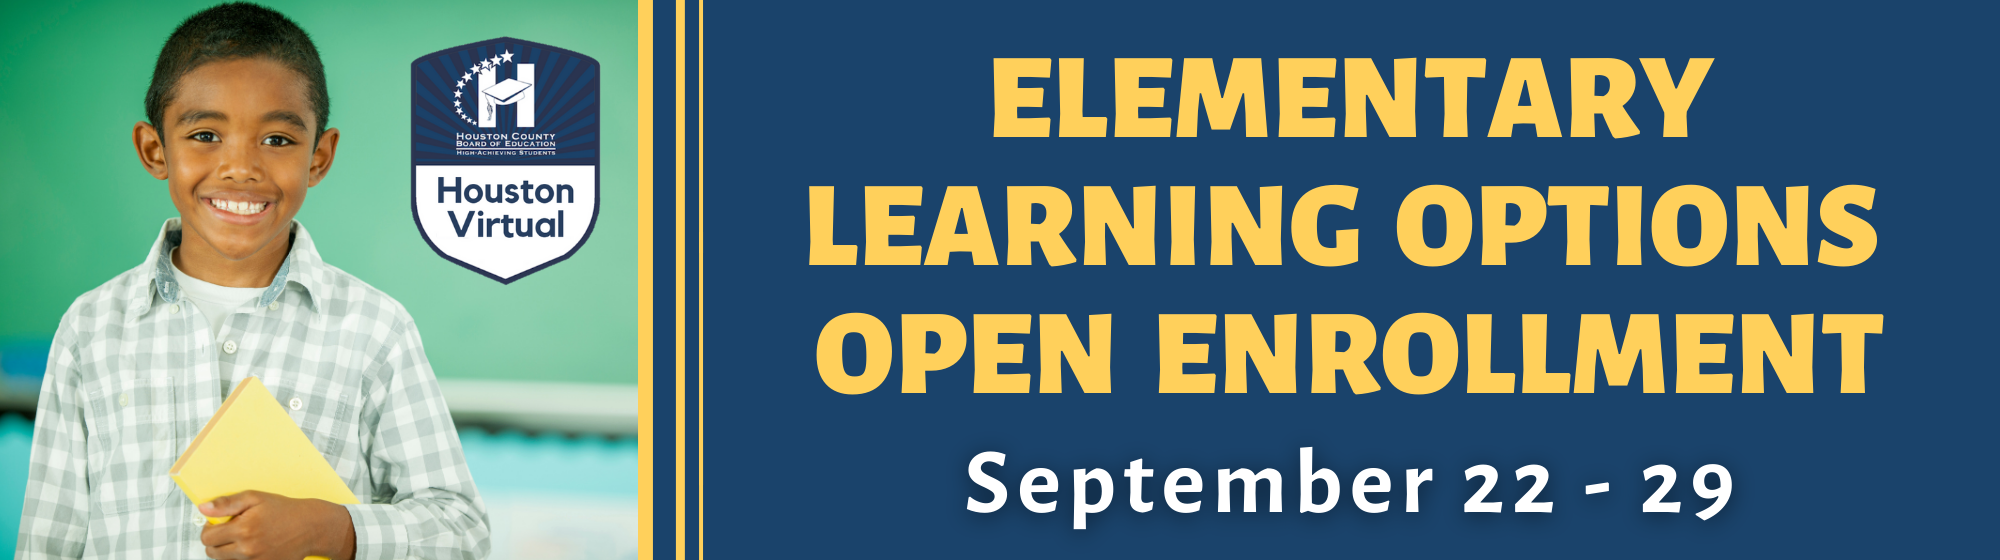 Elementary Learning Options Open Enrollment, September 22-29